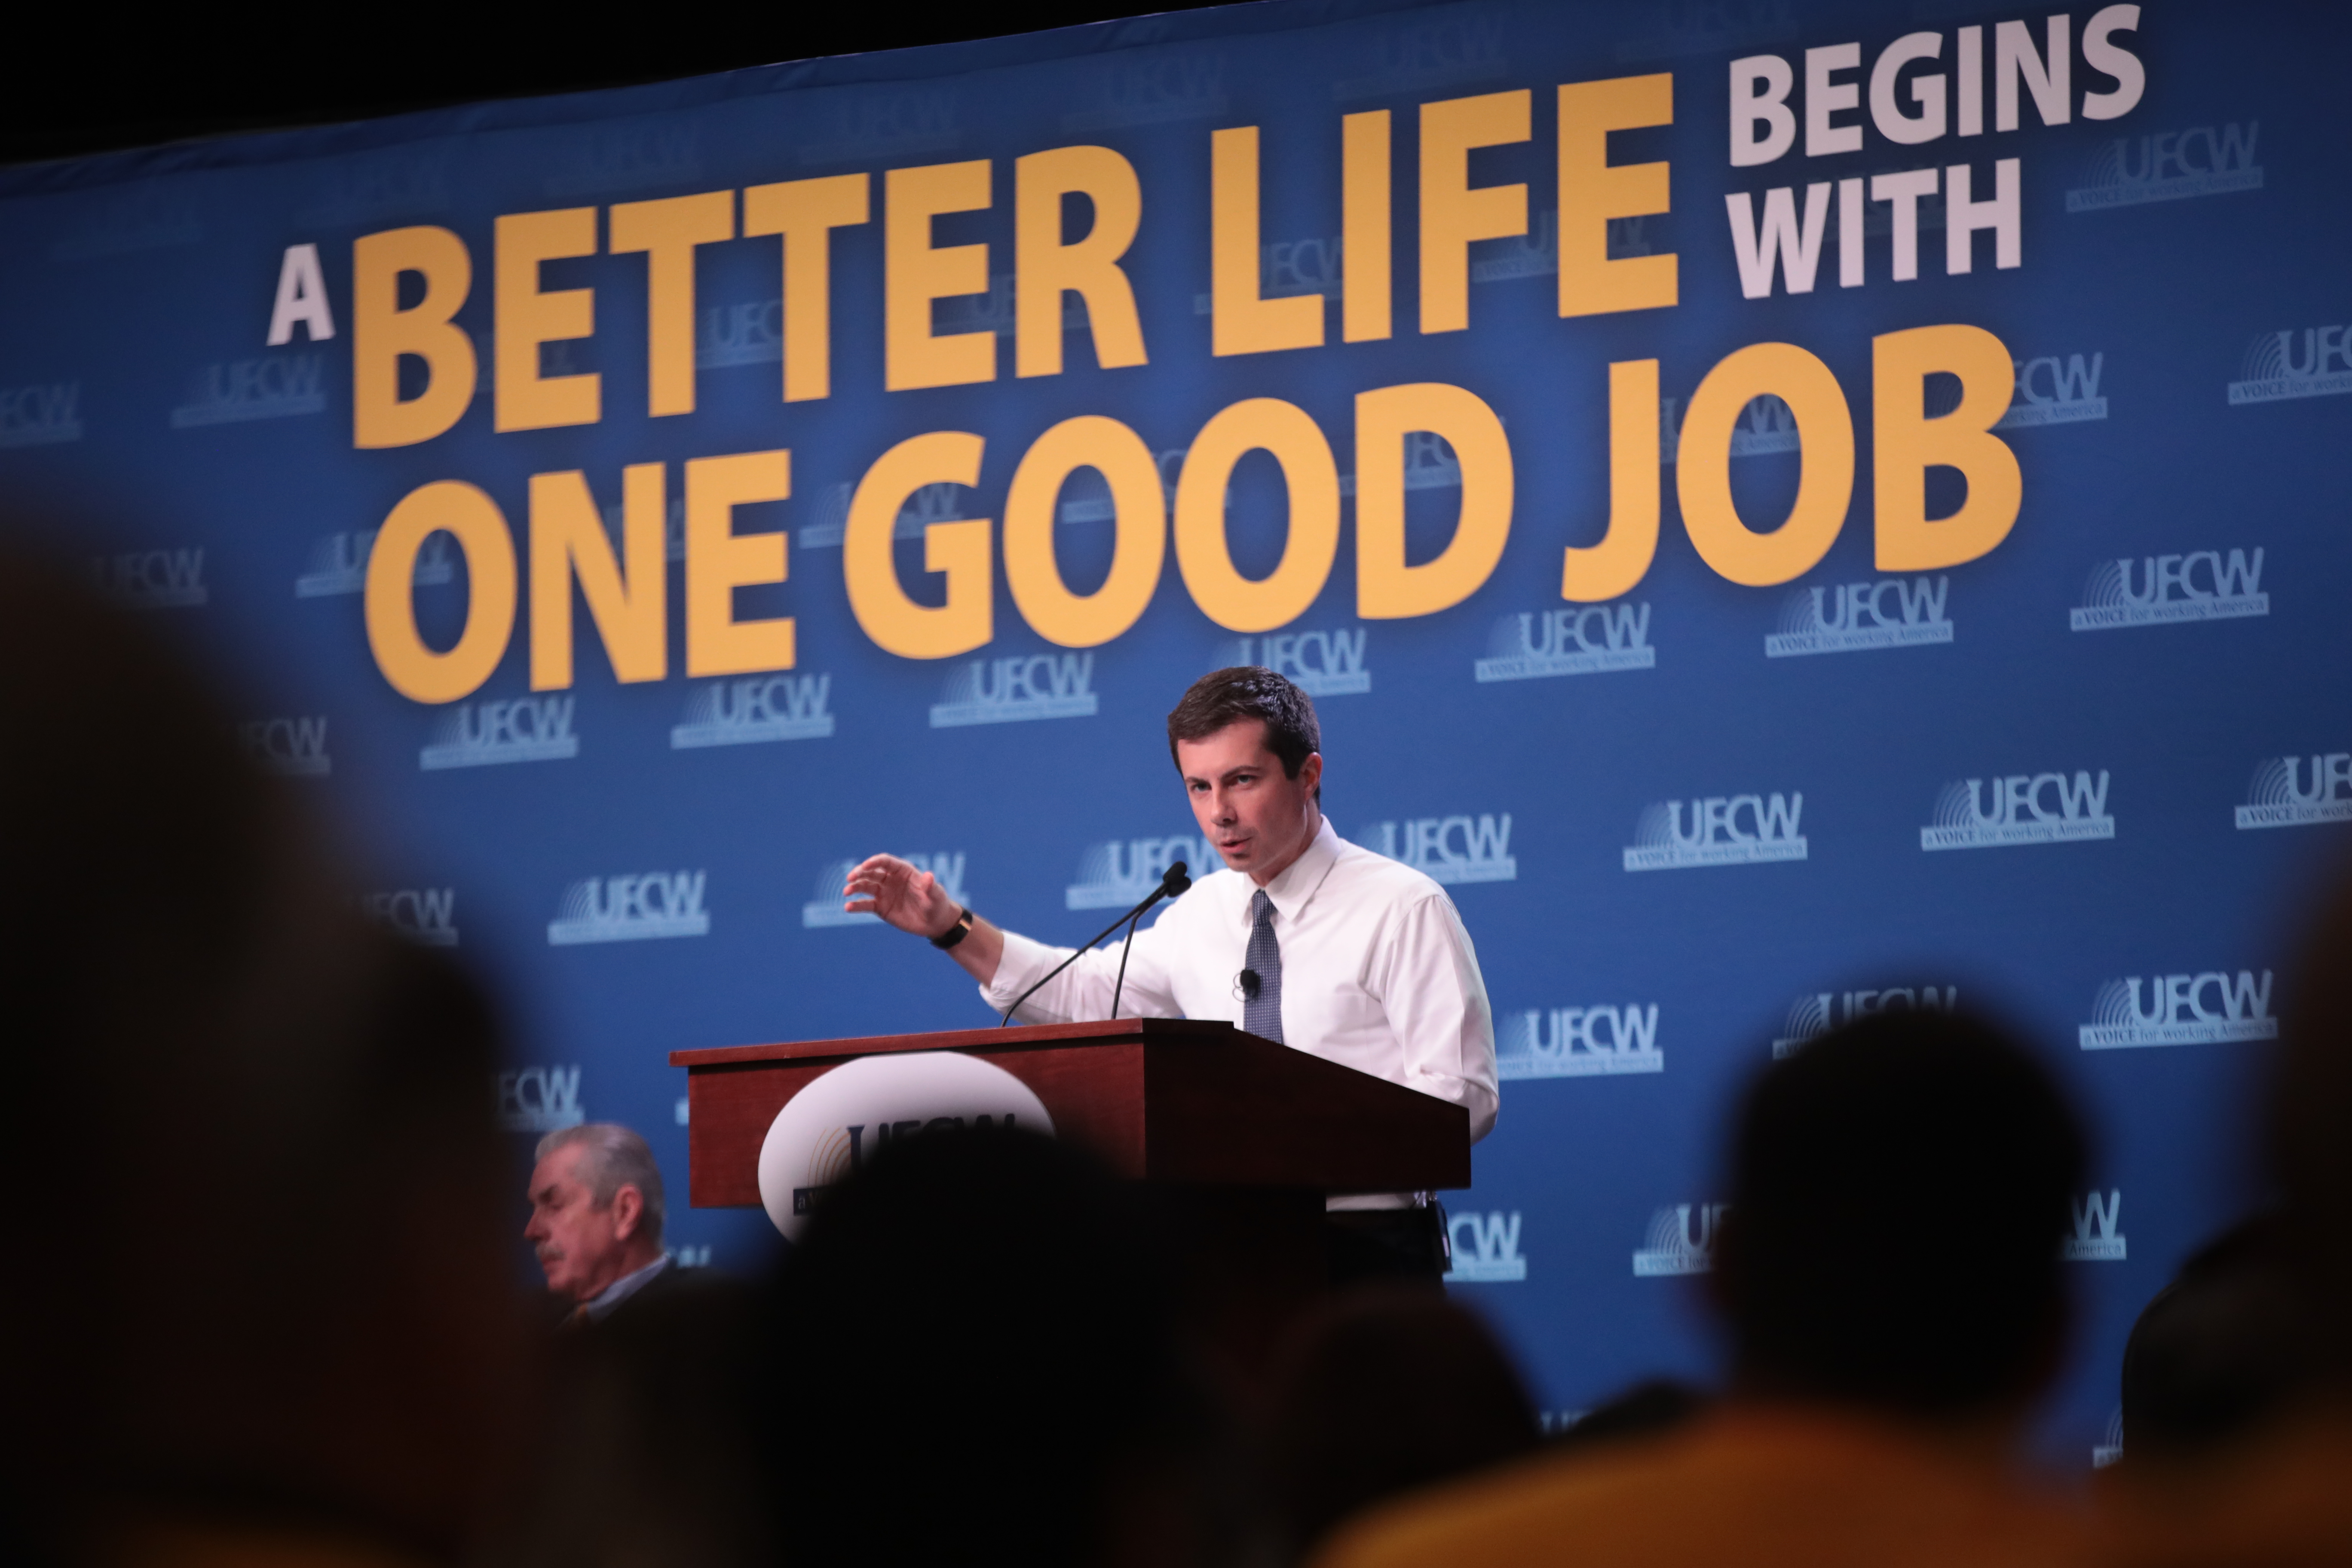 ALTOONA, IOWA - OCTOBER 13: South Bend, Indiana Mayor Pete Buttigieg speaks to guests during the United Food and Commercial Workers' (UFCW) 2020 presidential candidate forum on October 13, 2019 in Altoona, Iowa. With 1.3 million members the UFCW is America's largest private sector union. The 2020 Iowa Democratic caucuses will take place on February 3, 2020, making it the first nominating contest in the Democratic Party presidential primaries (Photo by Scott Olson/Getty Images)